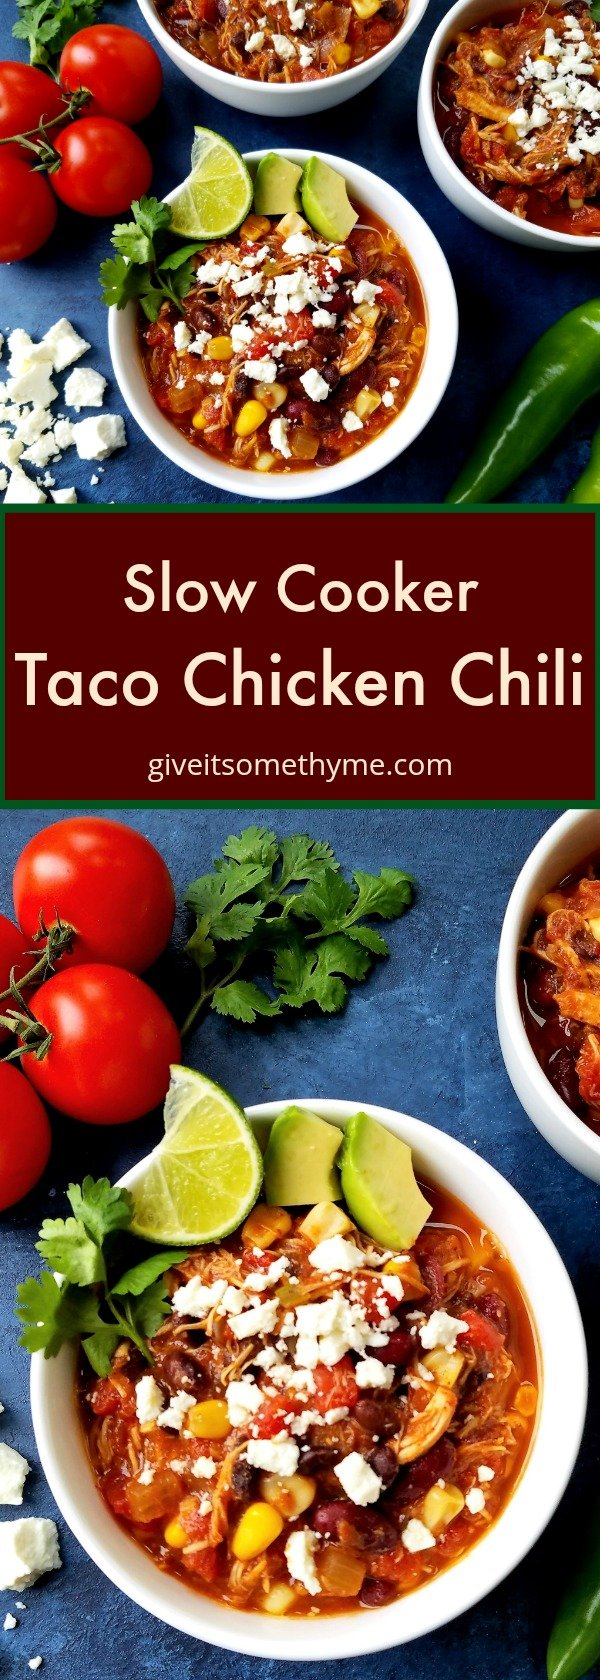 Slow Cooker Taco Chicken Chili - Give it Some Thyme